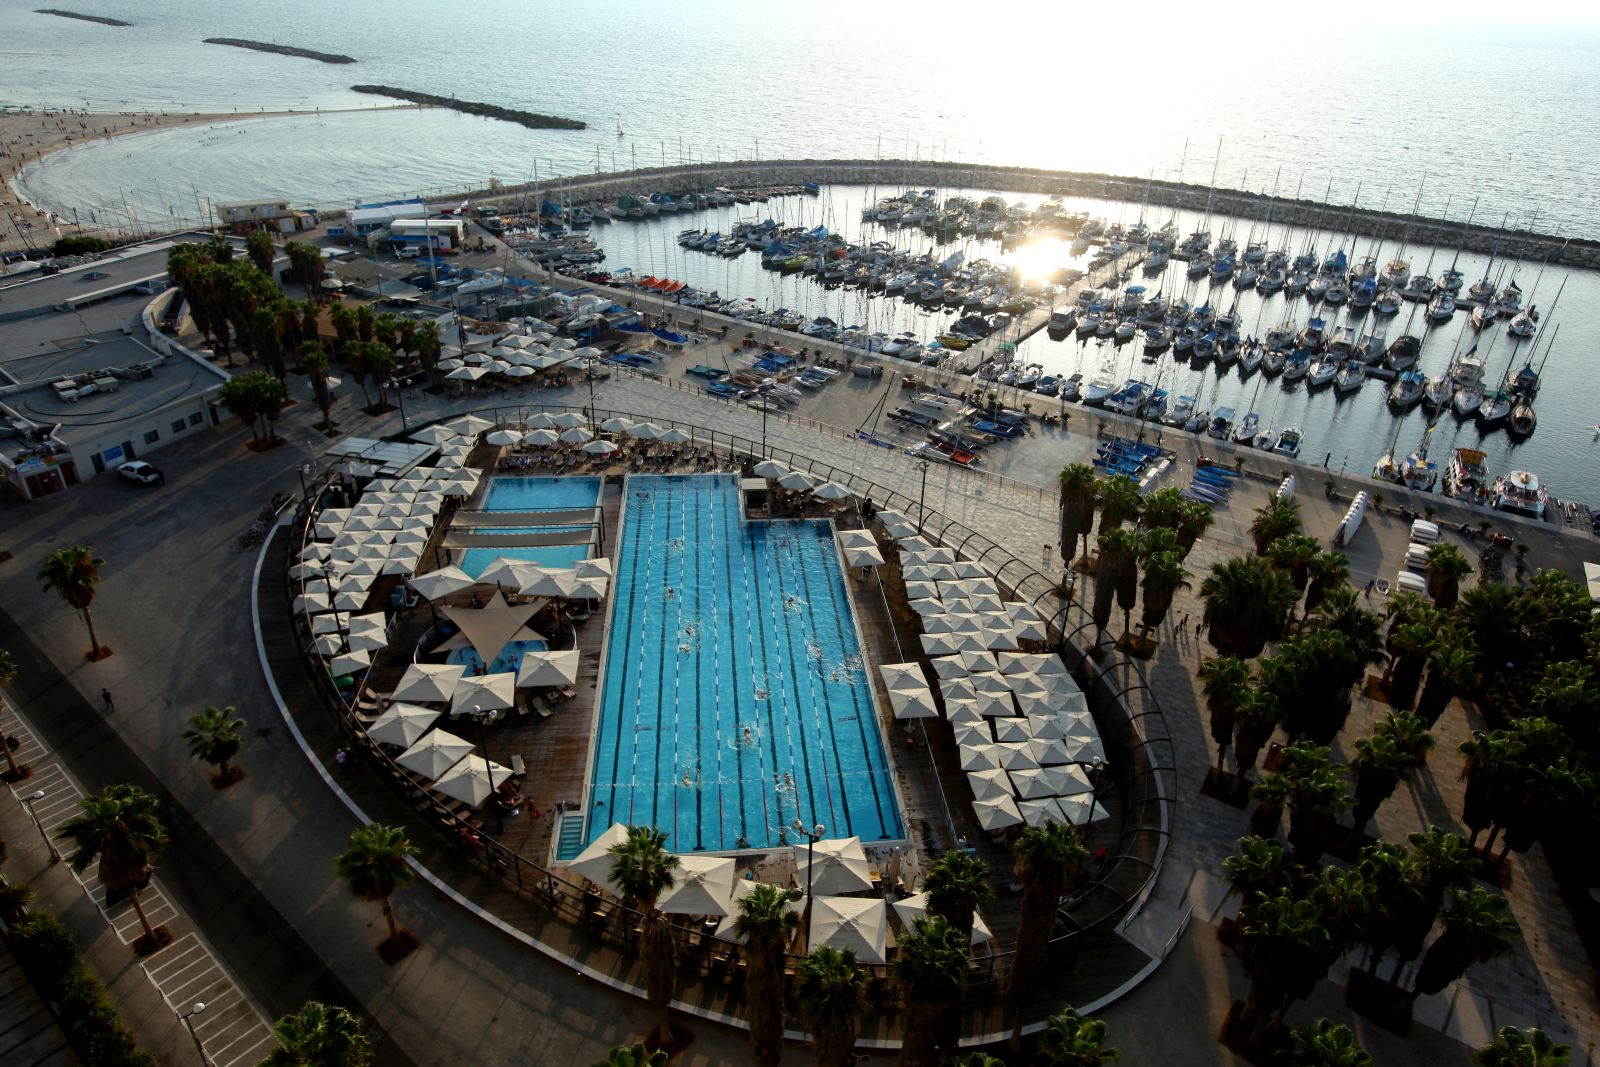 Overview of the Gordon swimming pool at the Tel Aviv beach. Photo by Moshe Shai/FLASH90